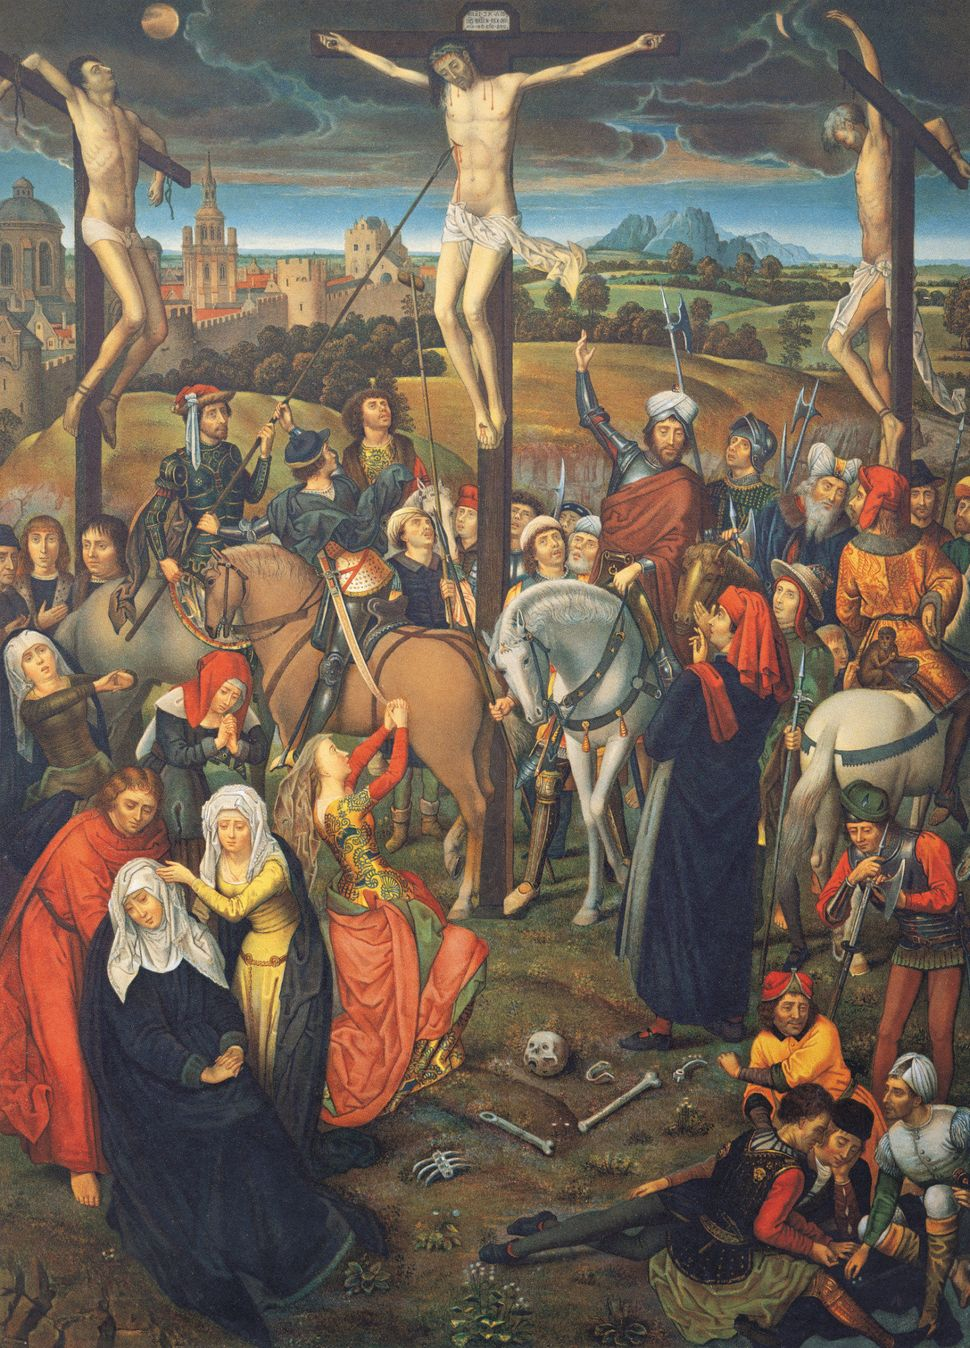 The crucifixion of Jesus Christ on Calvary, outside Jerusalem, 1491 A chromolithograph after Memling from the Passion Triptyc